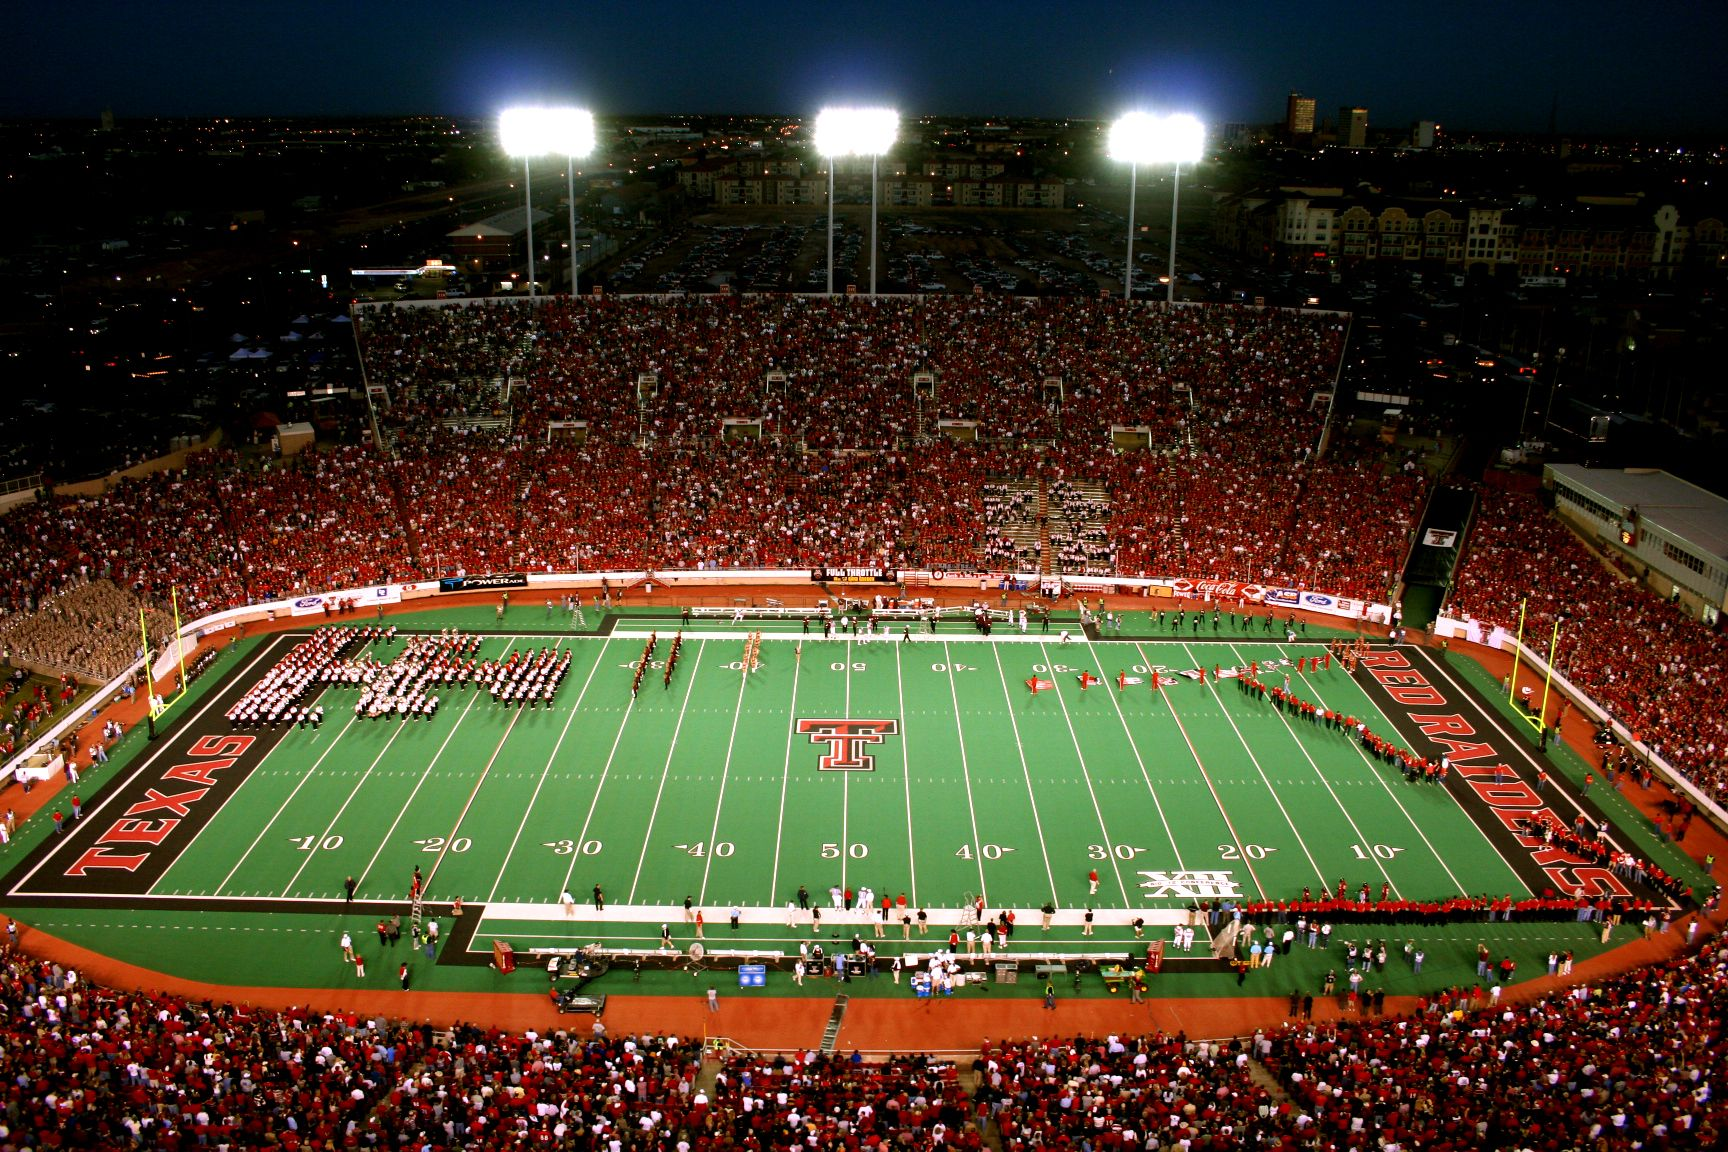 16 Jones At T Stadium Texas Tech Red Raiders Football Texas Tech Football Football Stadiums